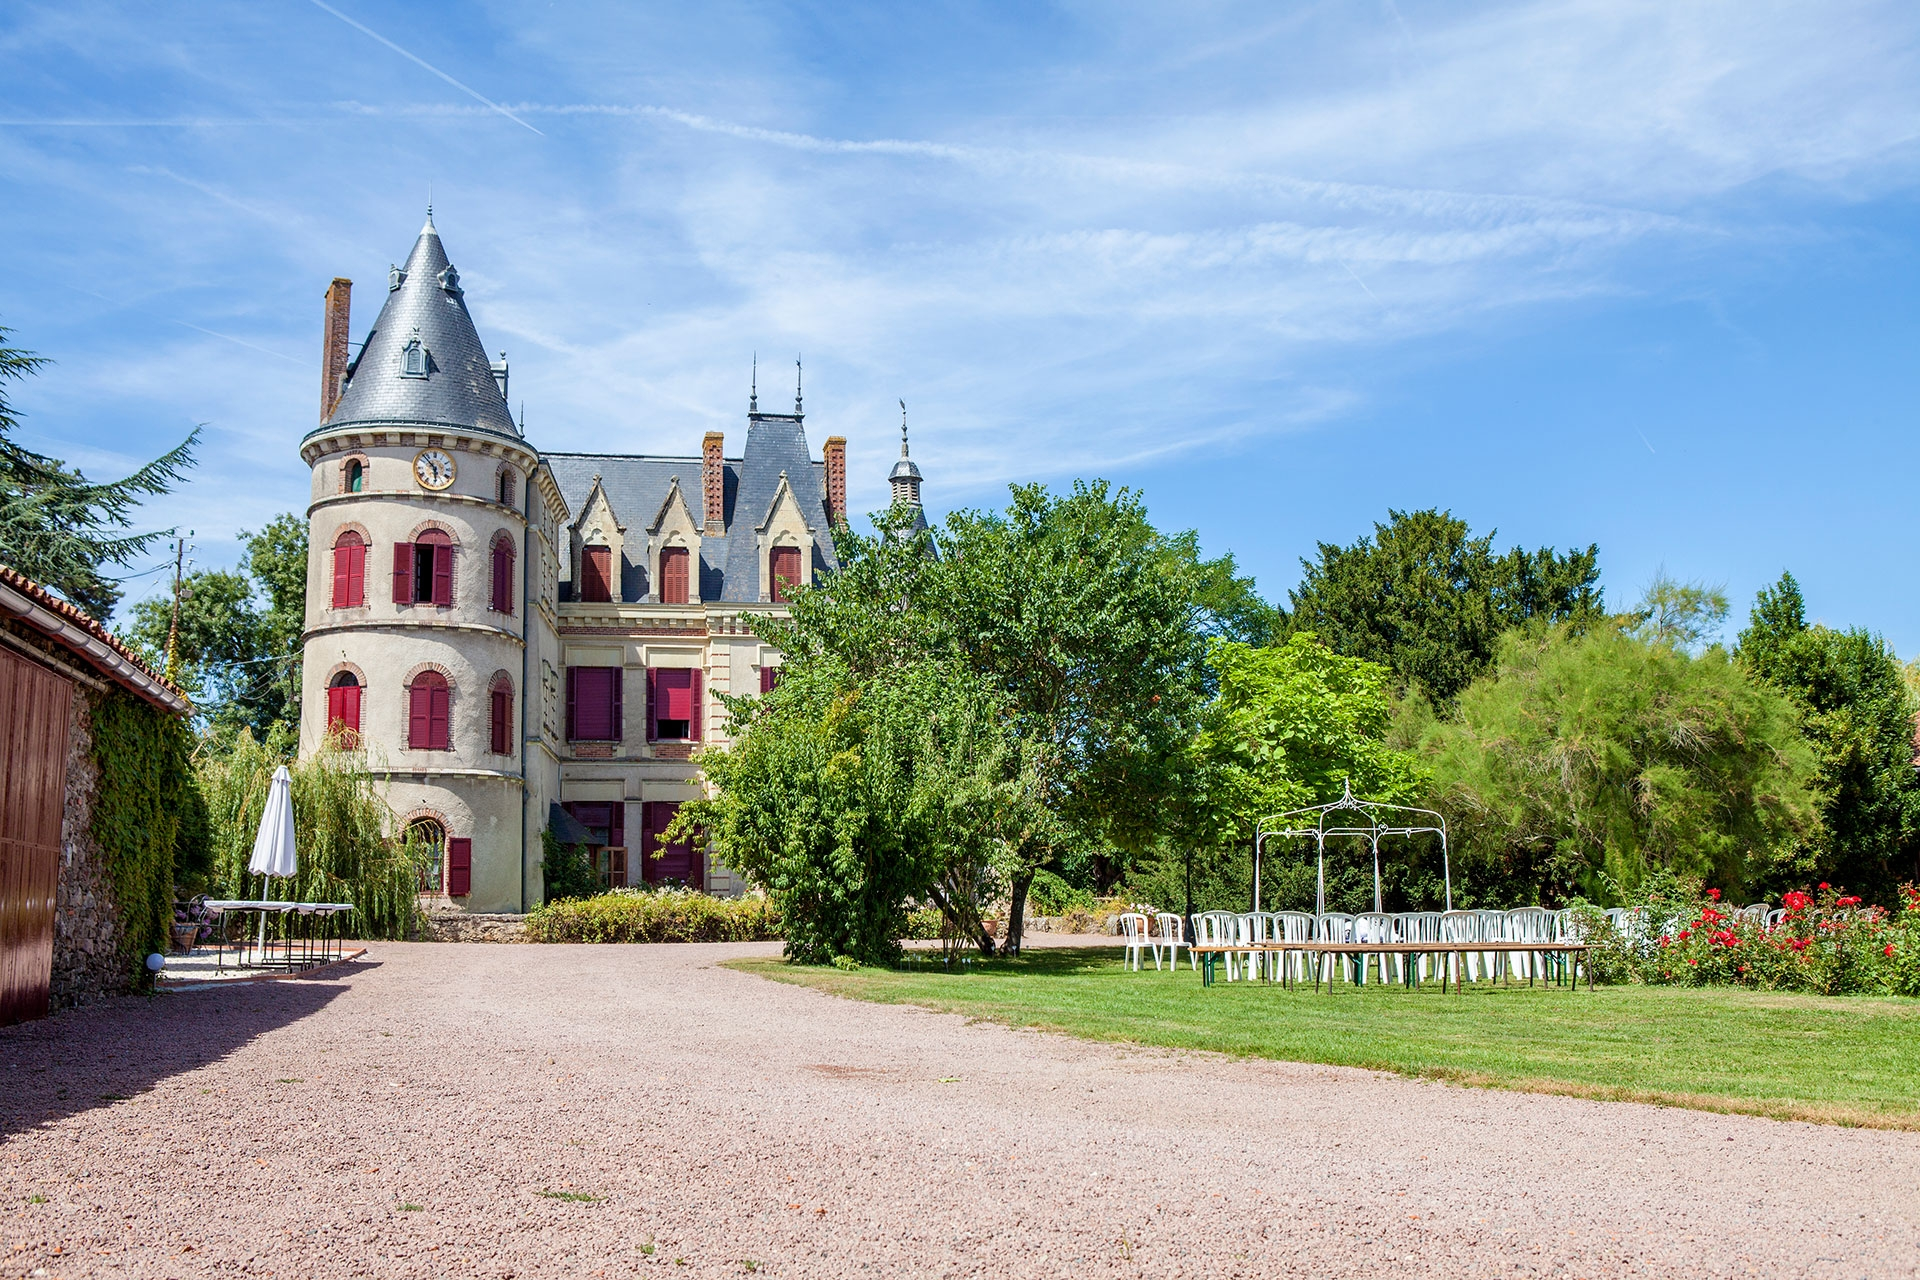 particuliers-evenements-mariages-oui-france&philippe-01